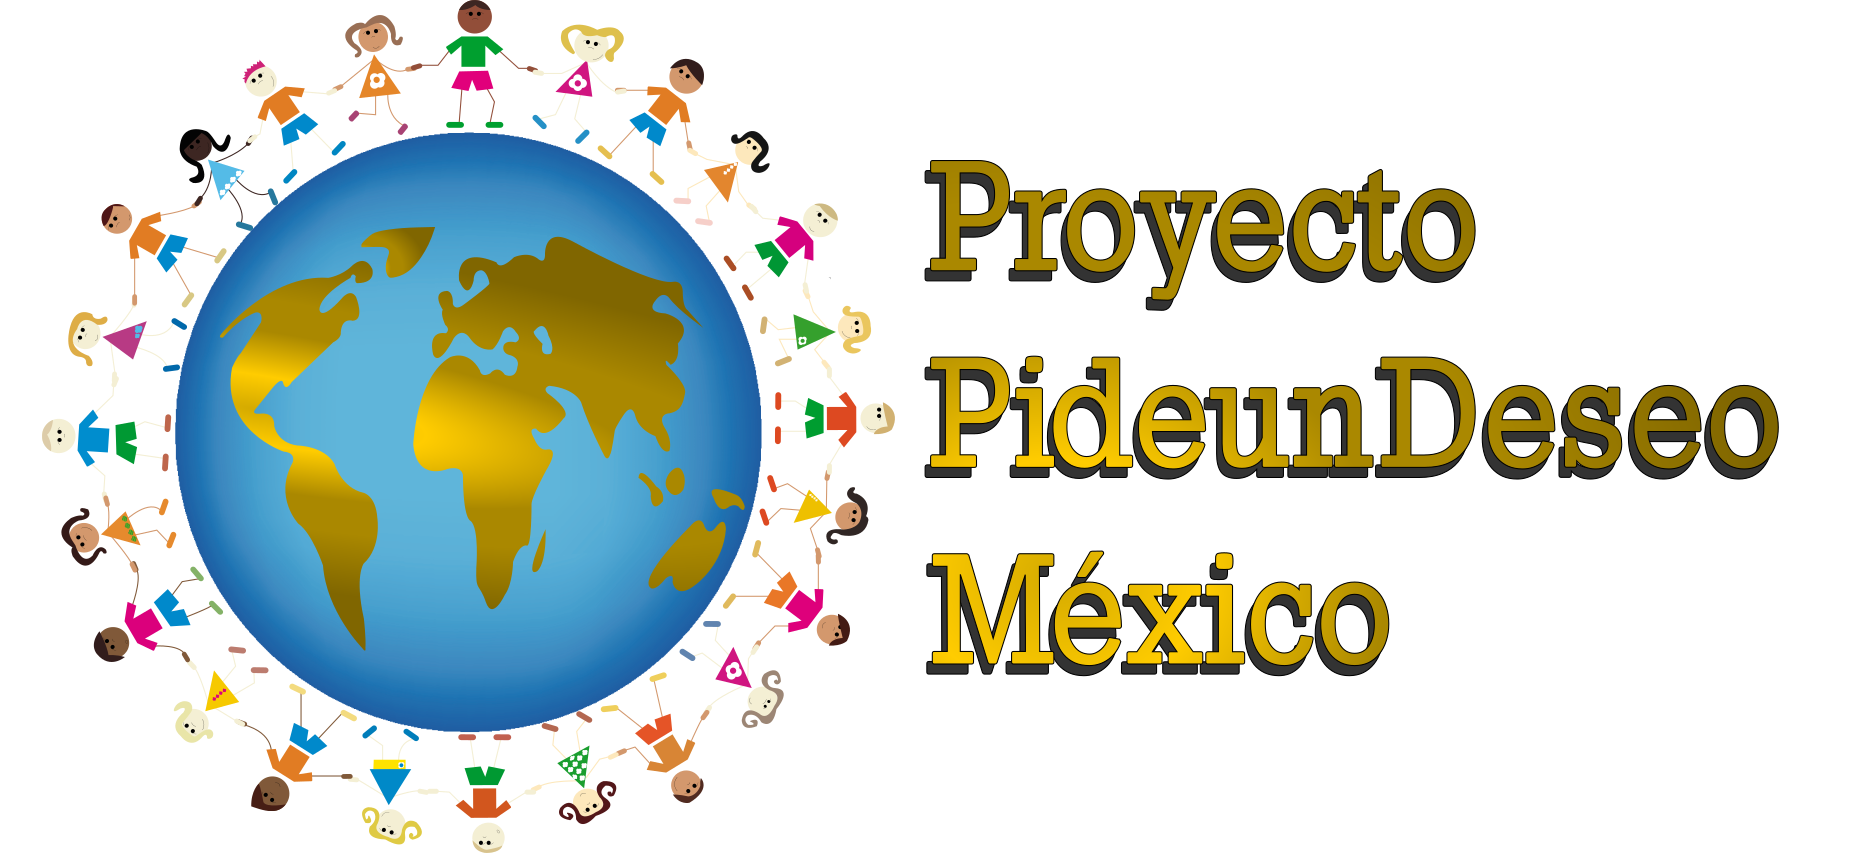 Logotipo de Proyecto Pide un Deseo México